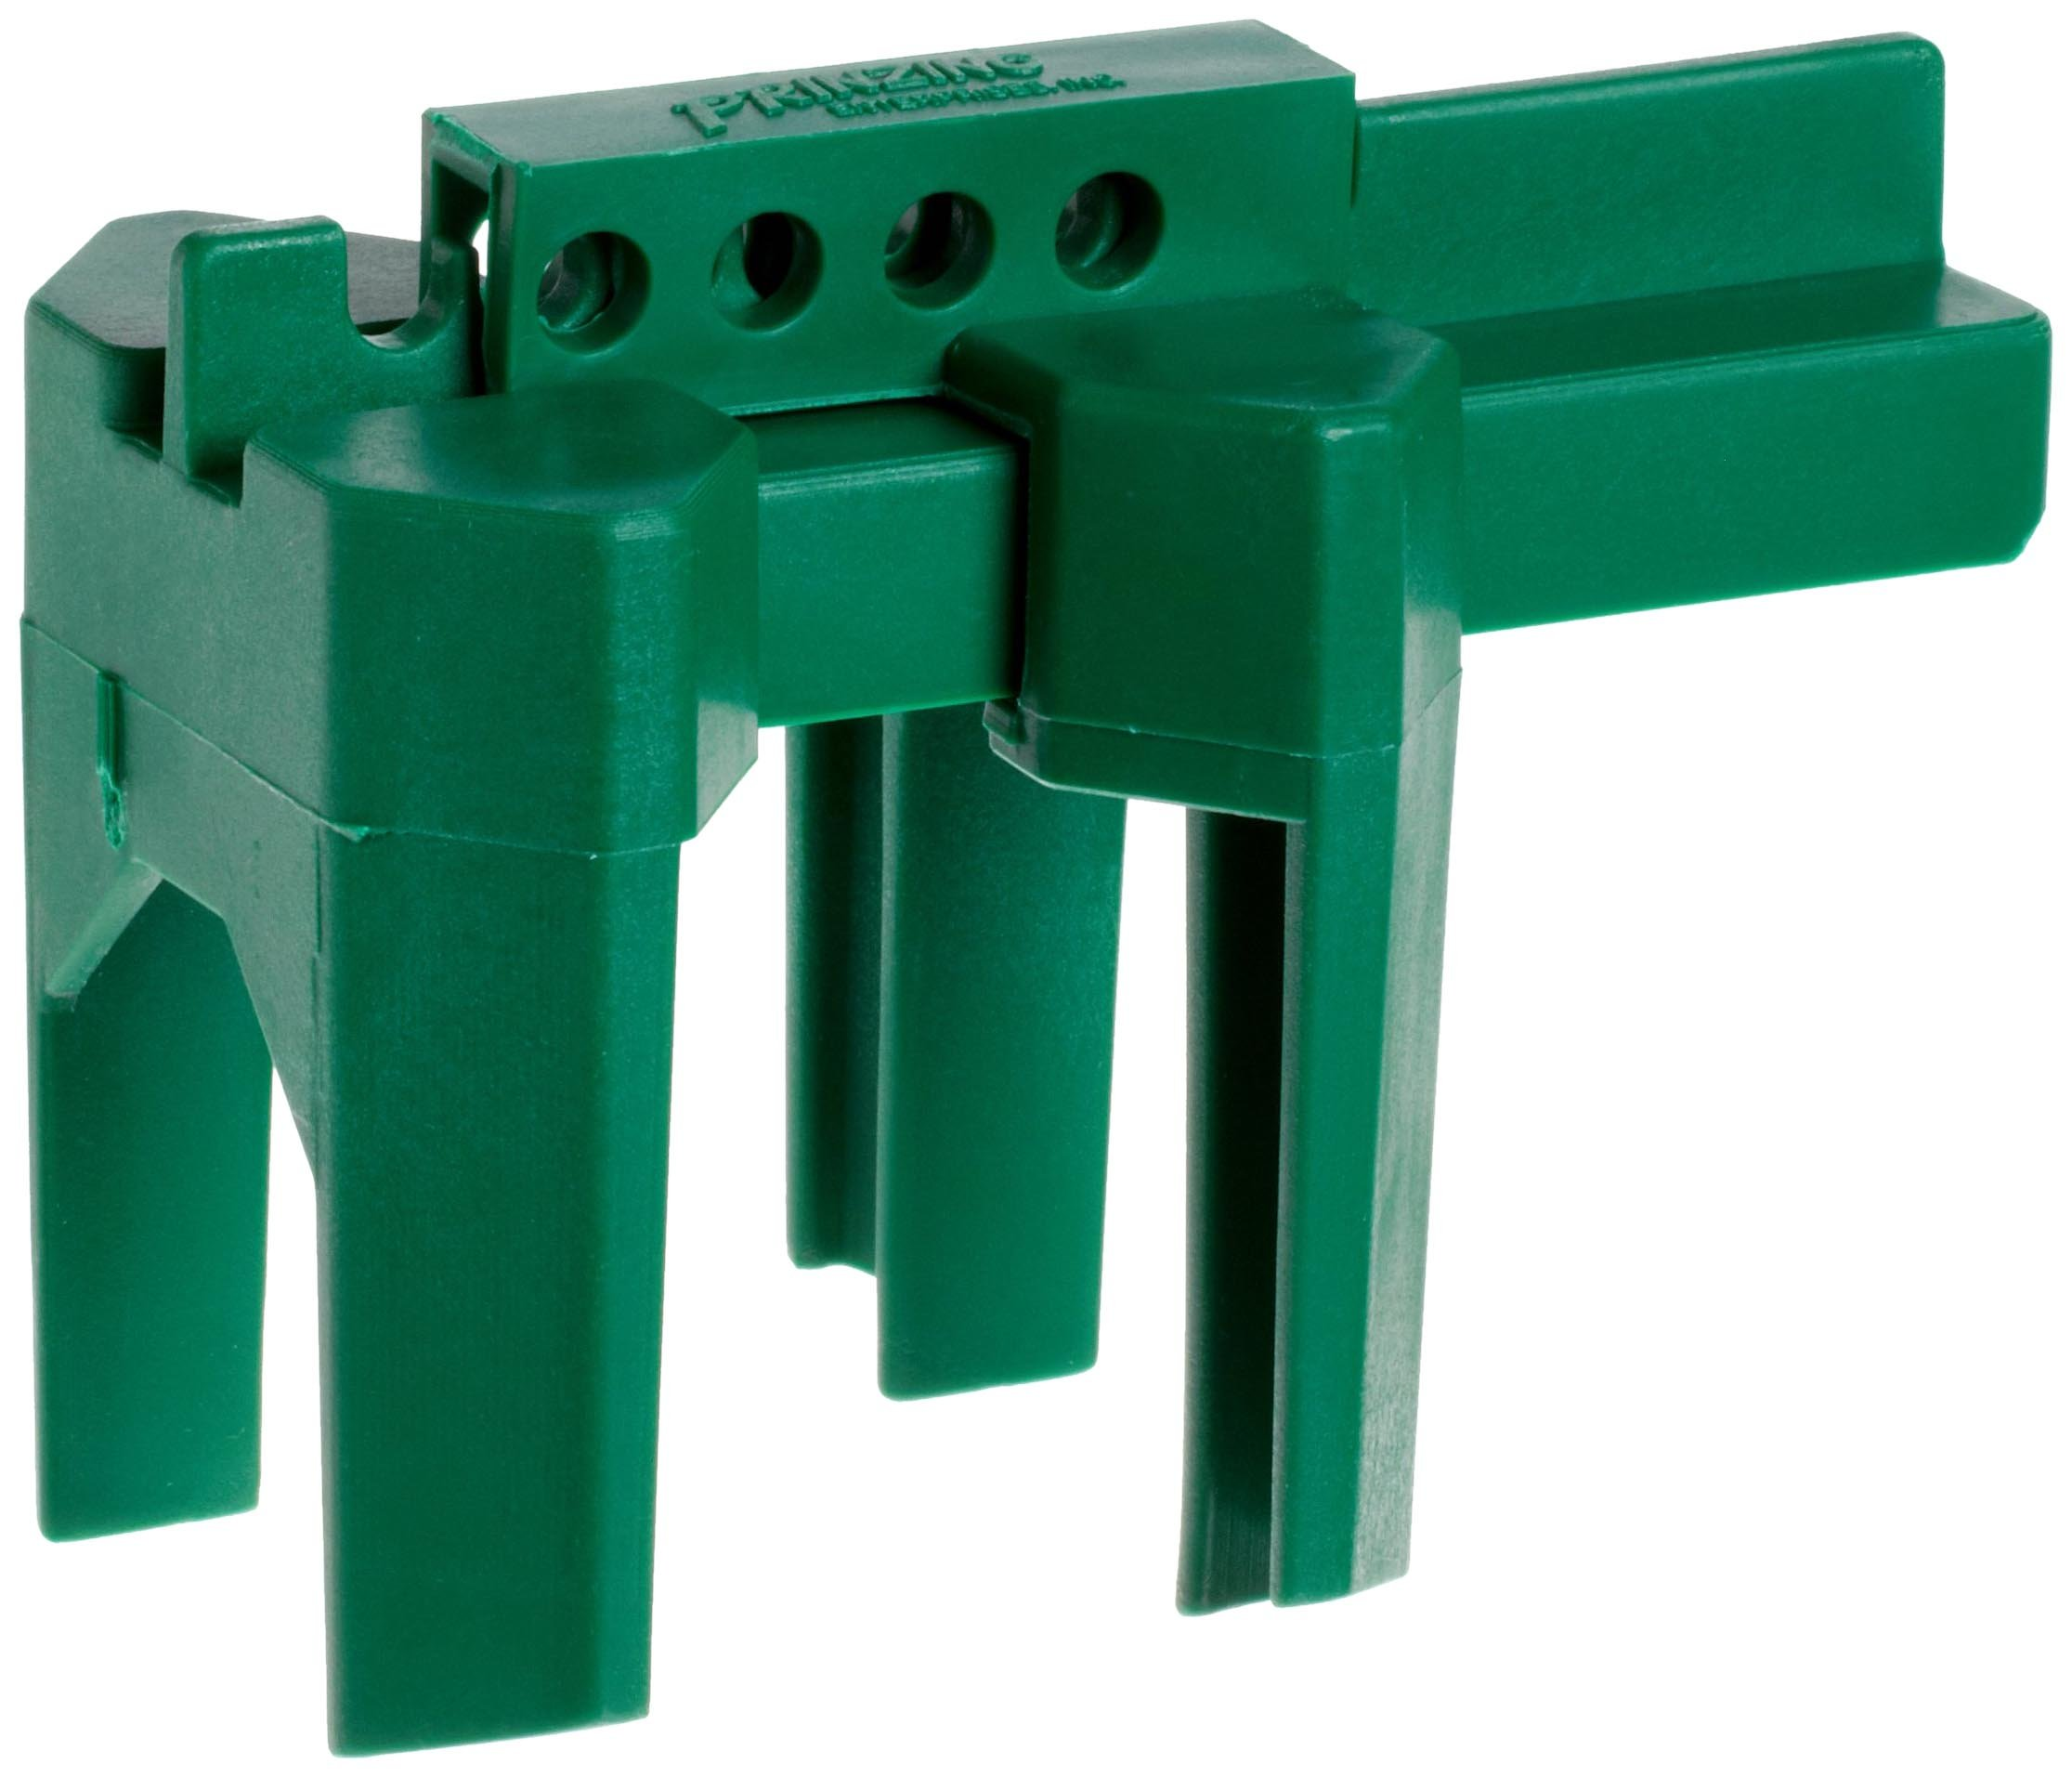 Brady Prinzing Ball Valve Lockout, Small, for 1/2''-2-1/2'' Outside Pipe Diameter, Green